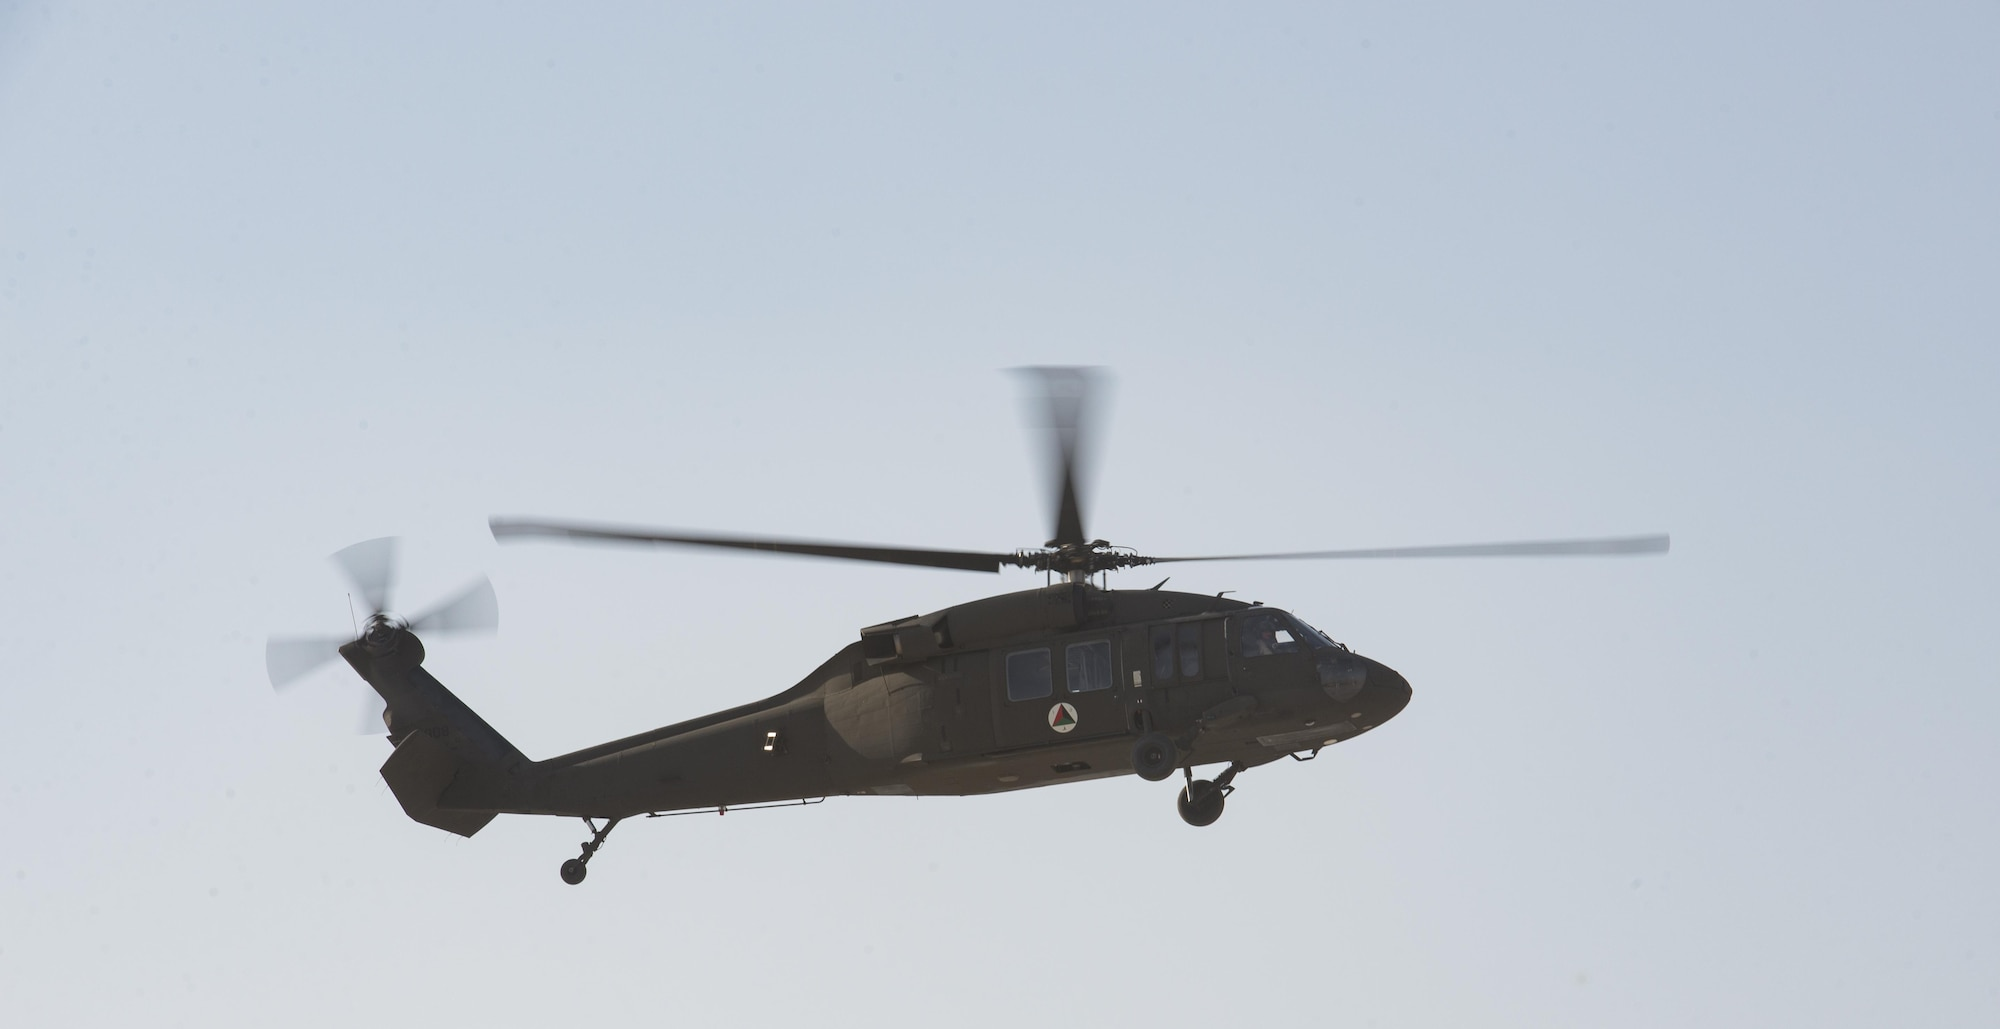 An Afghan Air Force UH-60 Black Hawk helicopter hovers over Kandahar Airfield, Afghanistan, Oct. 7, 2017. The AAF received the first two Black Hawks from the U.S. to bolster their air operations capabilities. The helicopters provide sustainable, capable replacements for aircraft currently in use. The UH-60s will help the AAF and Afghan National Defense and Security Forces combat insurgent groups. (U.S. Air Force photo by Staff Sgt. Benjamin Gonsier)